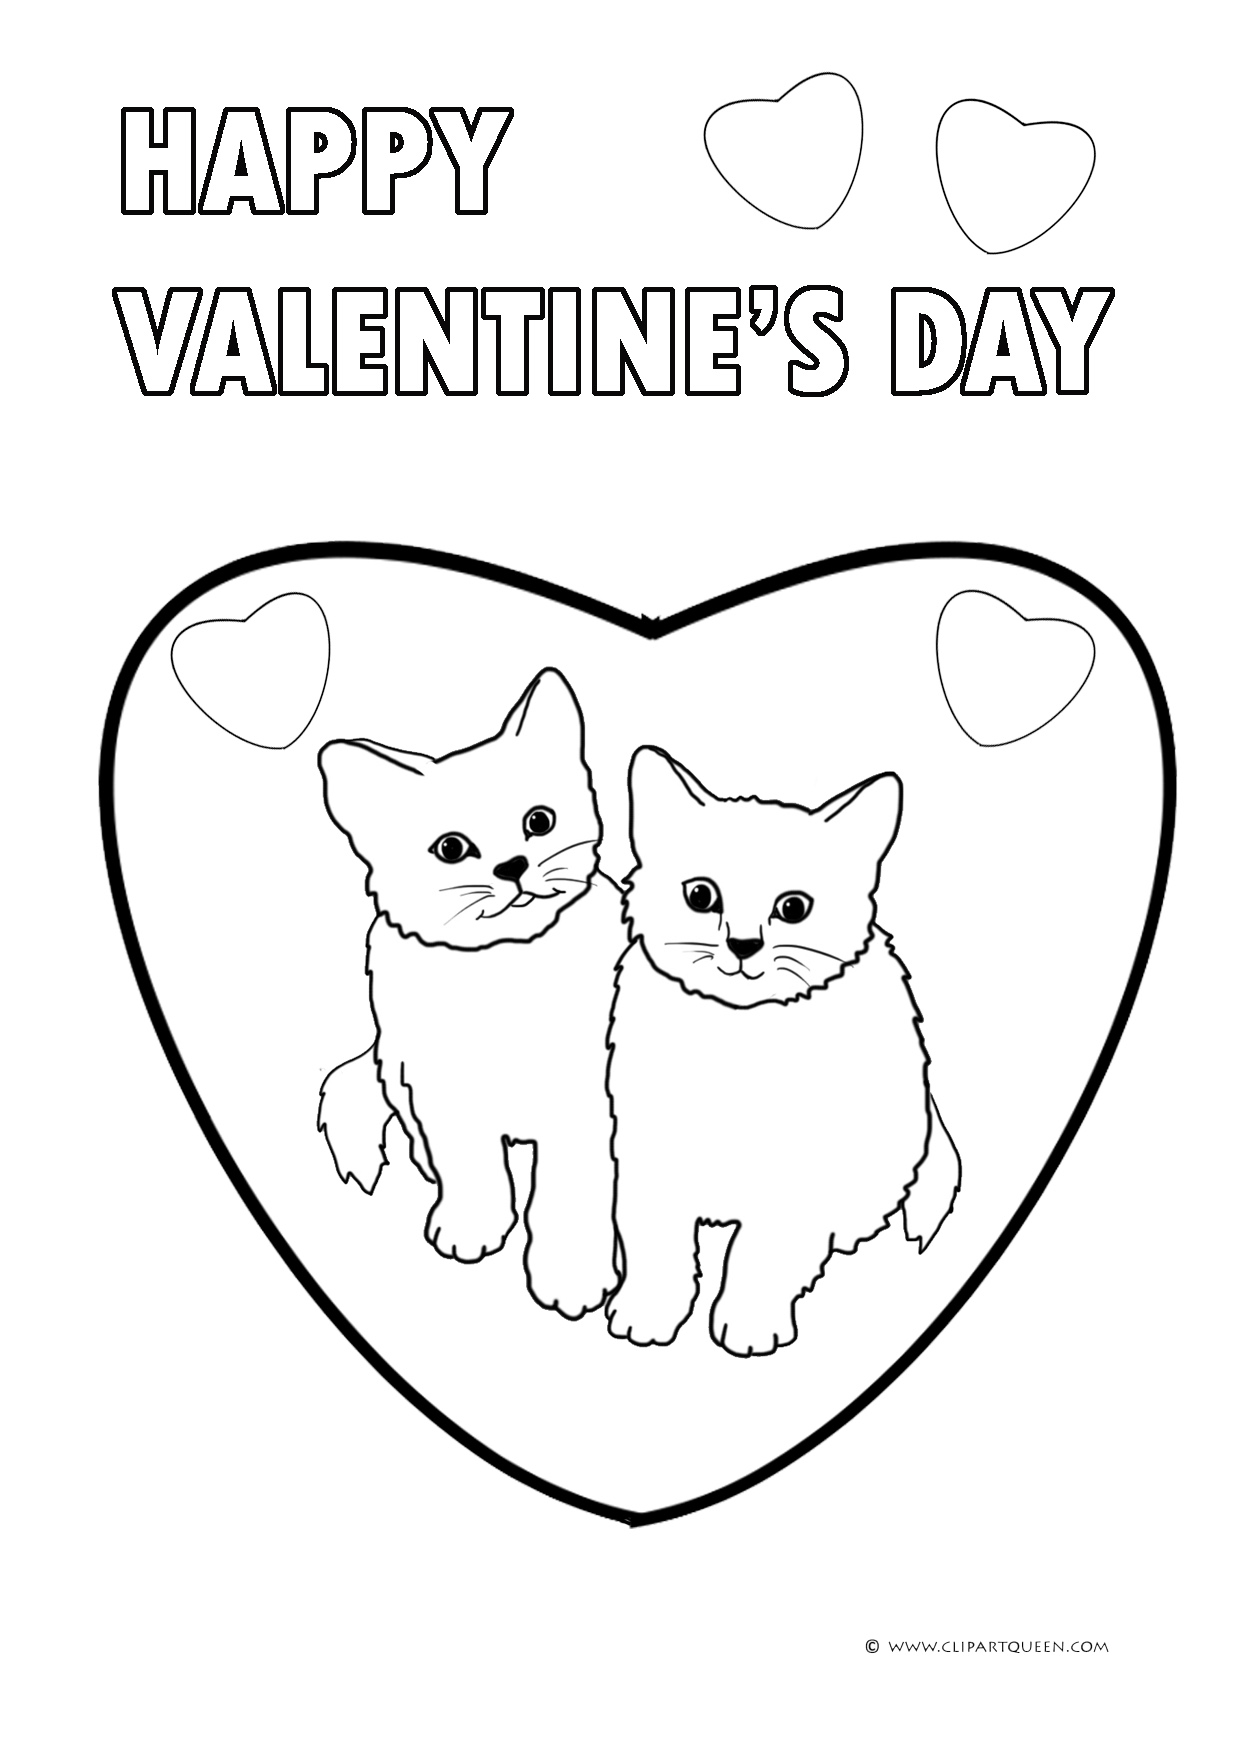 cute kittens in a heart and greeting - Valentines Coloring Pages